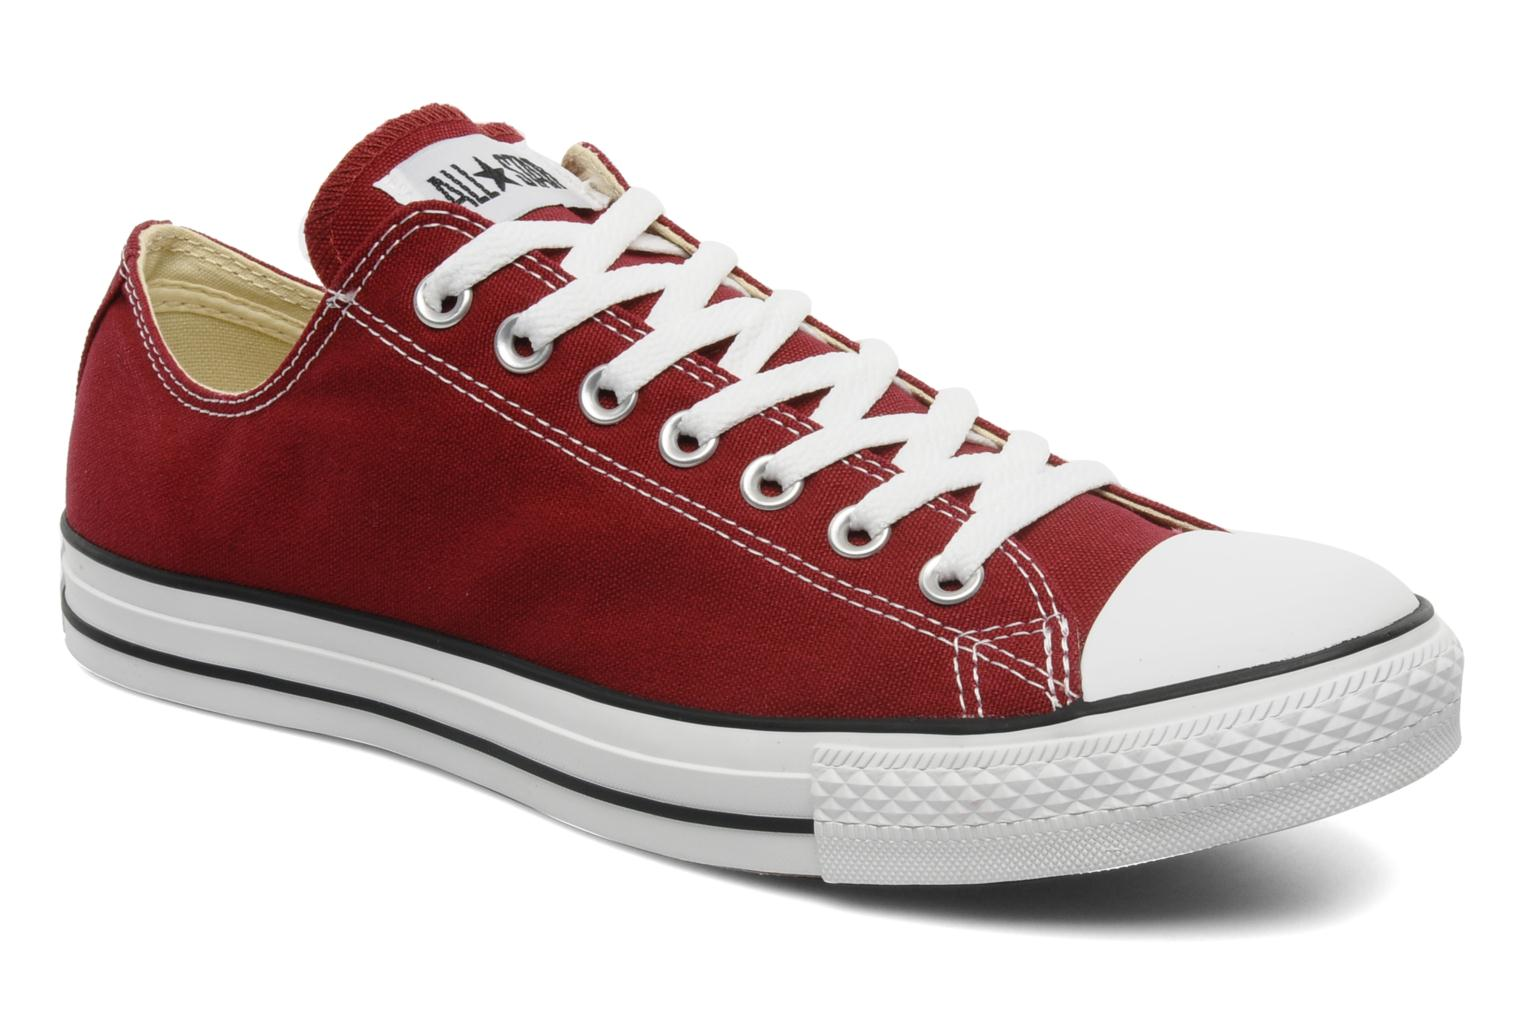 Converse Chuck Taylor All Star OX Low Red